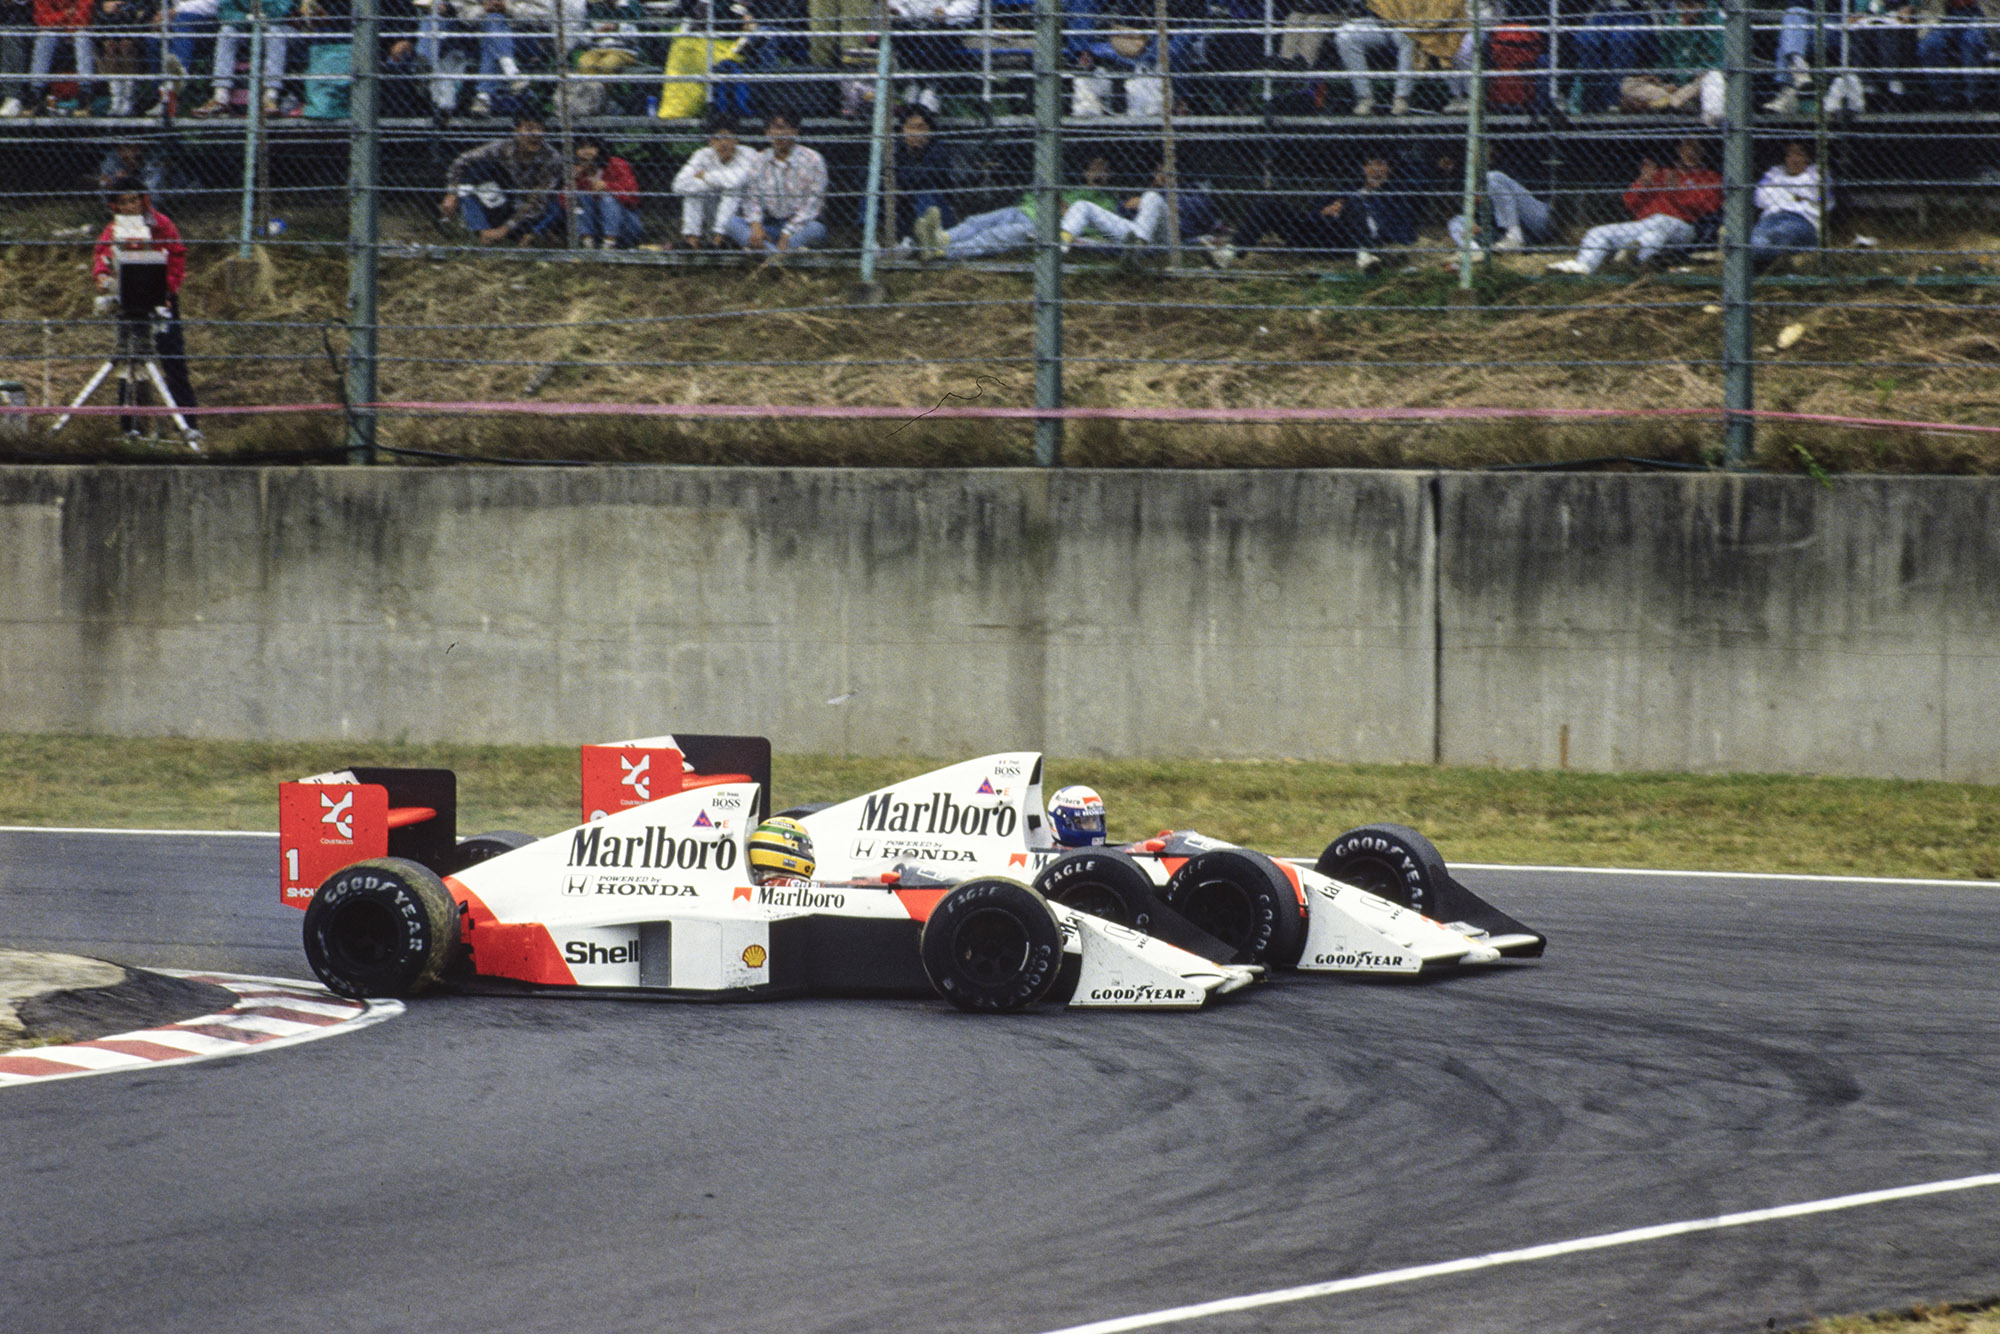 Ayrton Senna and Alain Prost at the Suzuka chicane ion the 1989 Japanese Grand Prix